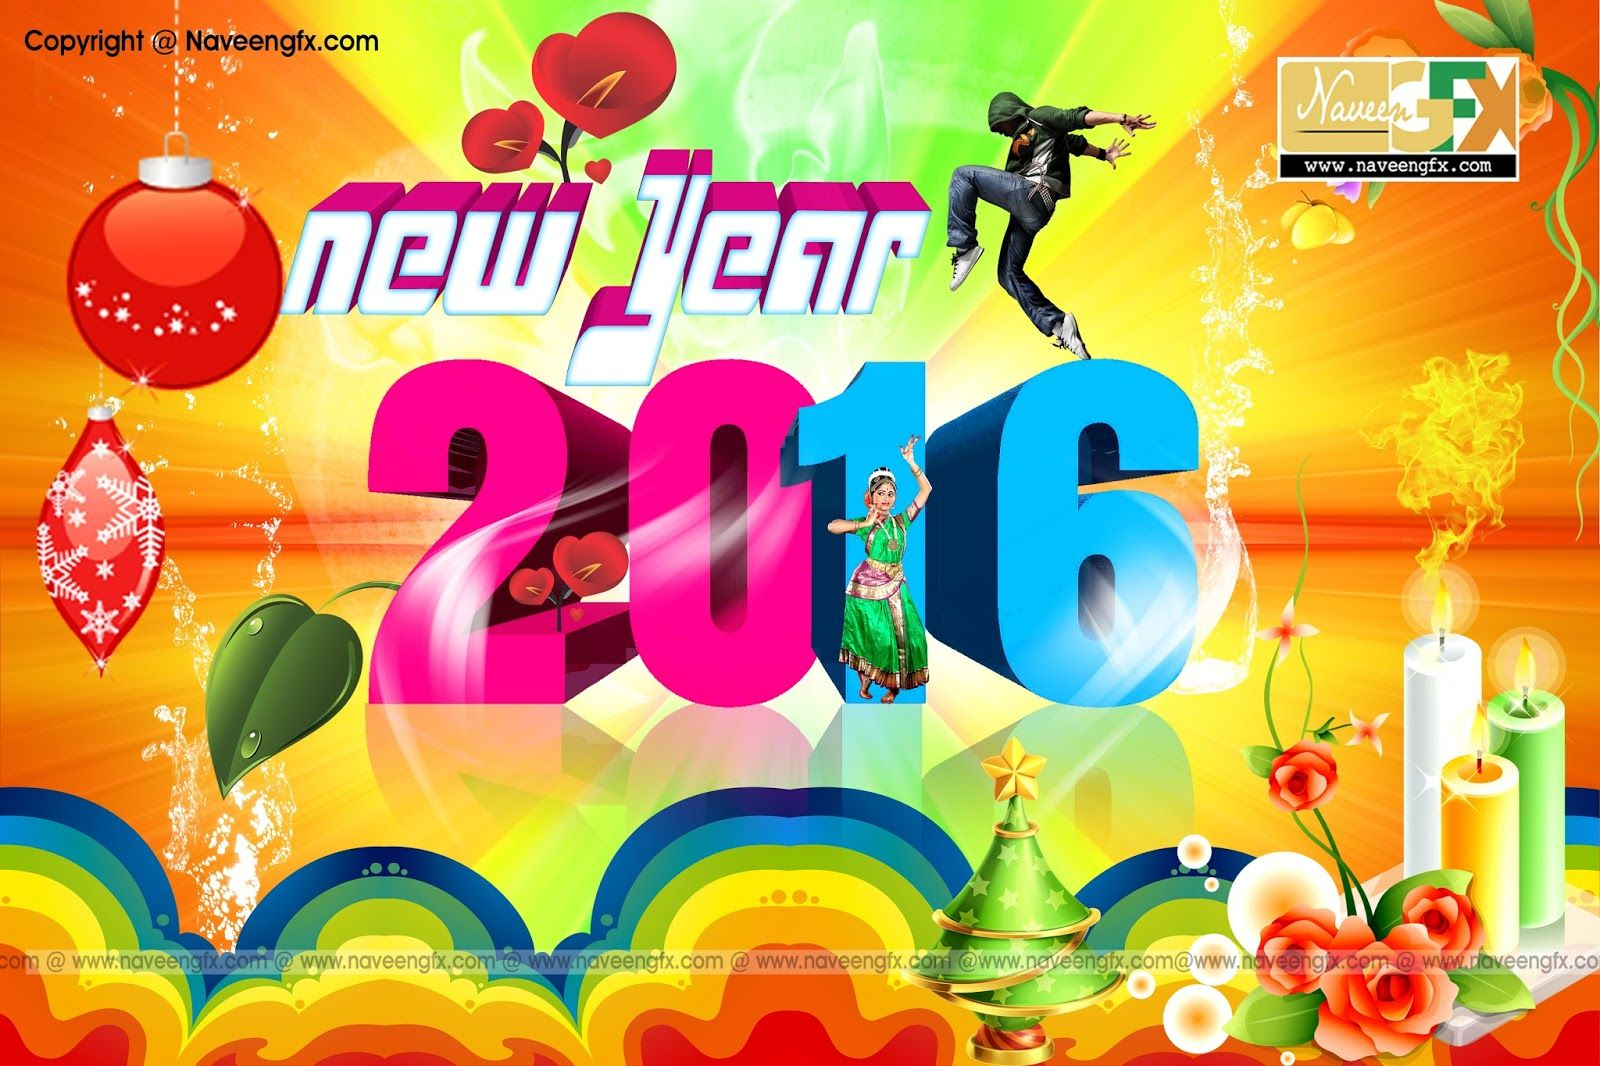 Happy new year 2016 greetings psd filesnew year greetings quotes happy new year 2016 greetings psd filesnew year greetings quotes with hd images kristyandbryce Image collections